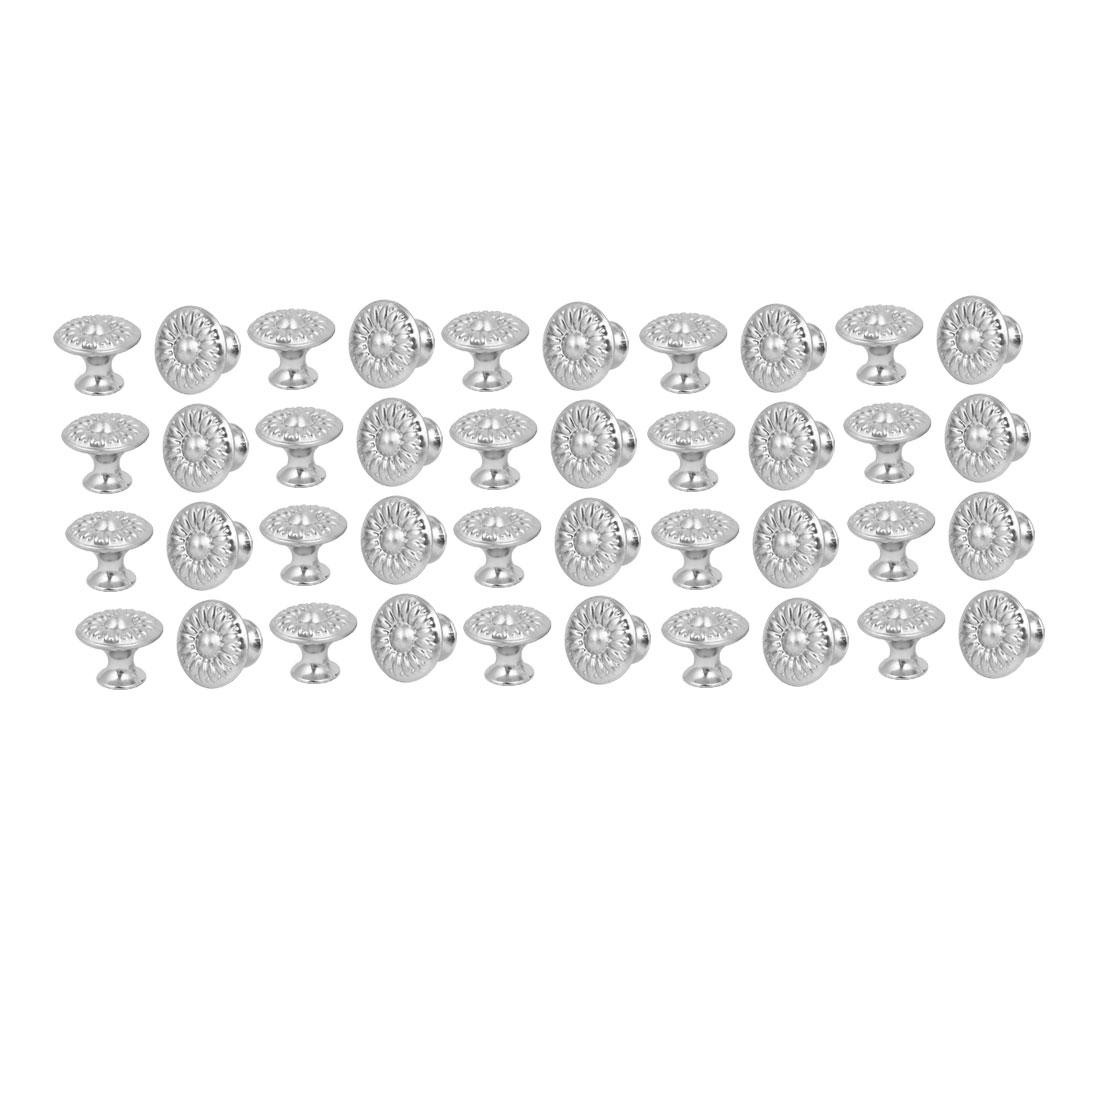 Cabinet Drawer Single Hole Flower Pattern Pull Knobs Silver Tone 27mmx22mm 40pcs